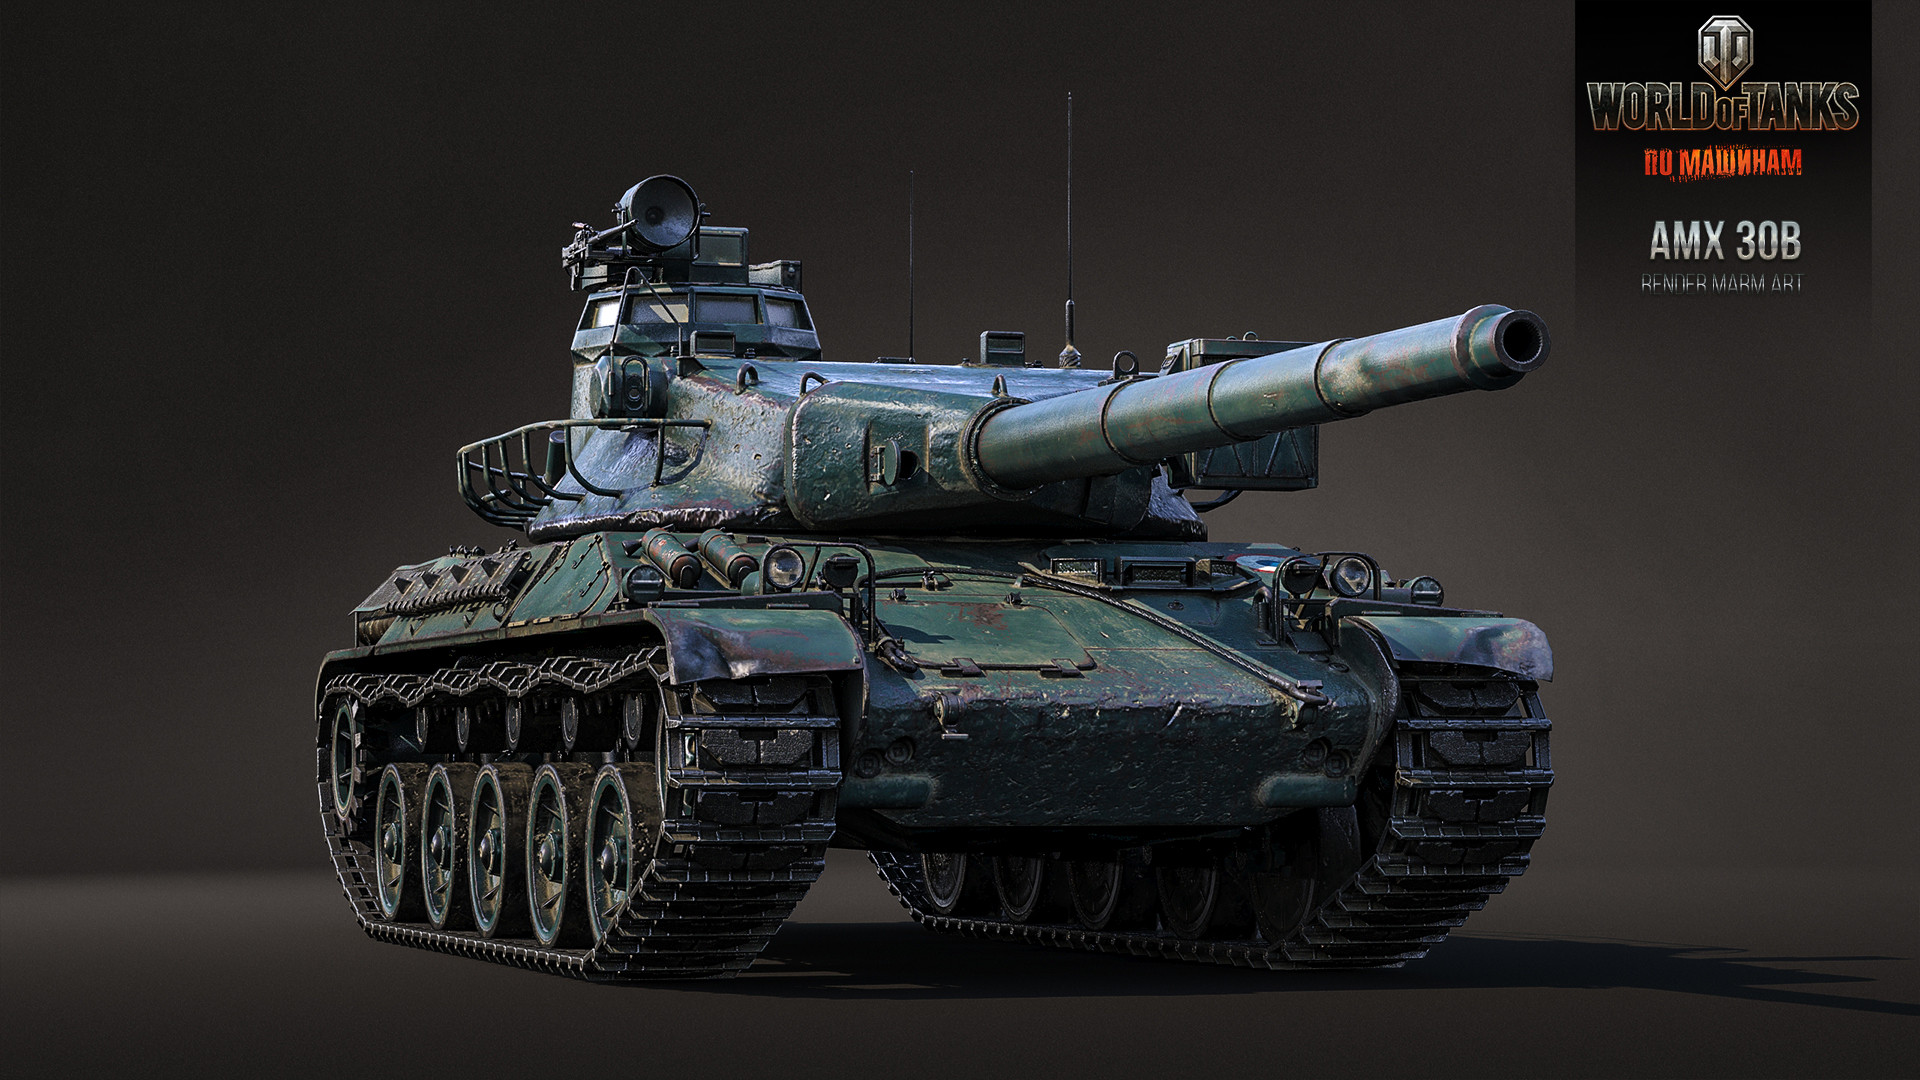 Free Download World Of Tanks Wallpapers 19201080 E Bay Blog World